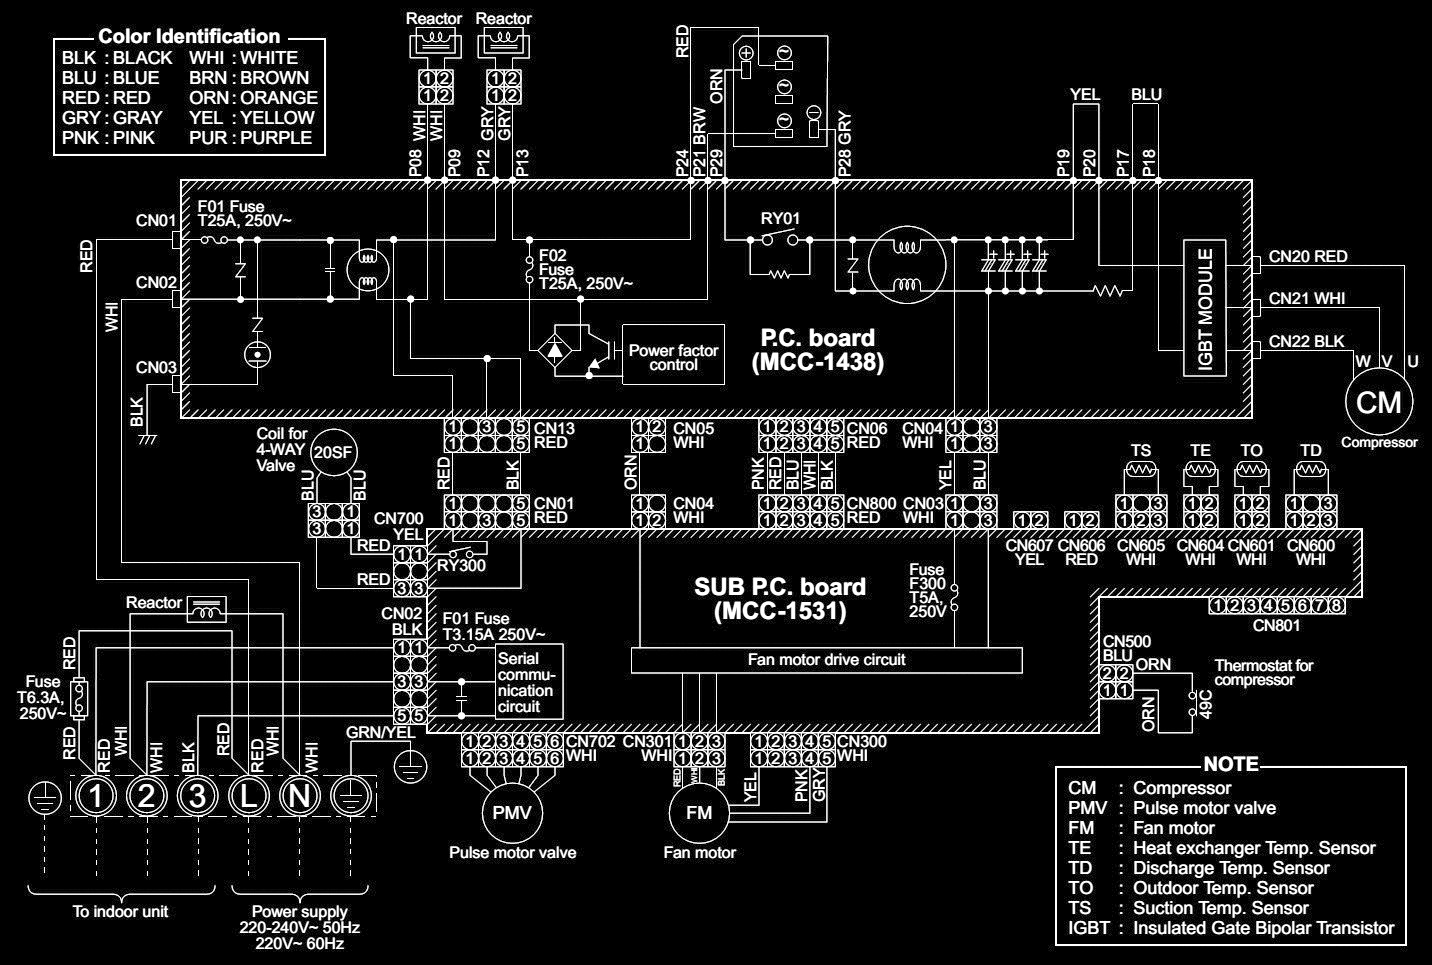 toshiba air conditioning wiring diagram electrical drawing wiring   click on the pictures to magnify